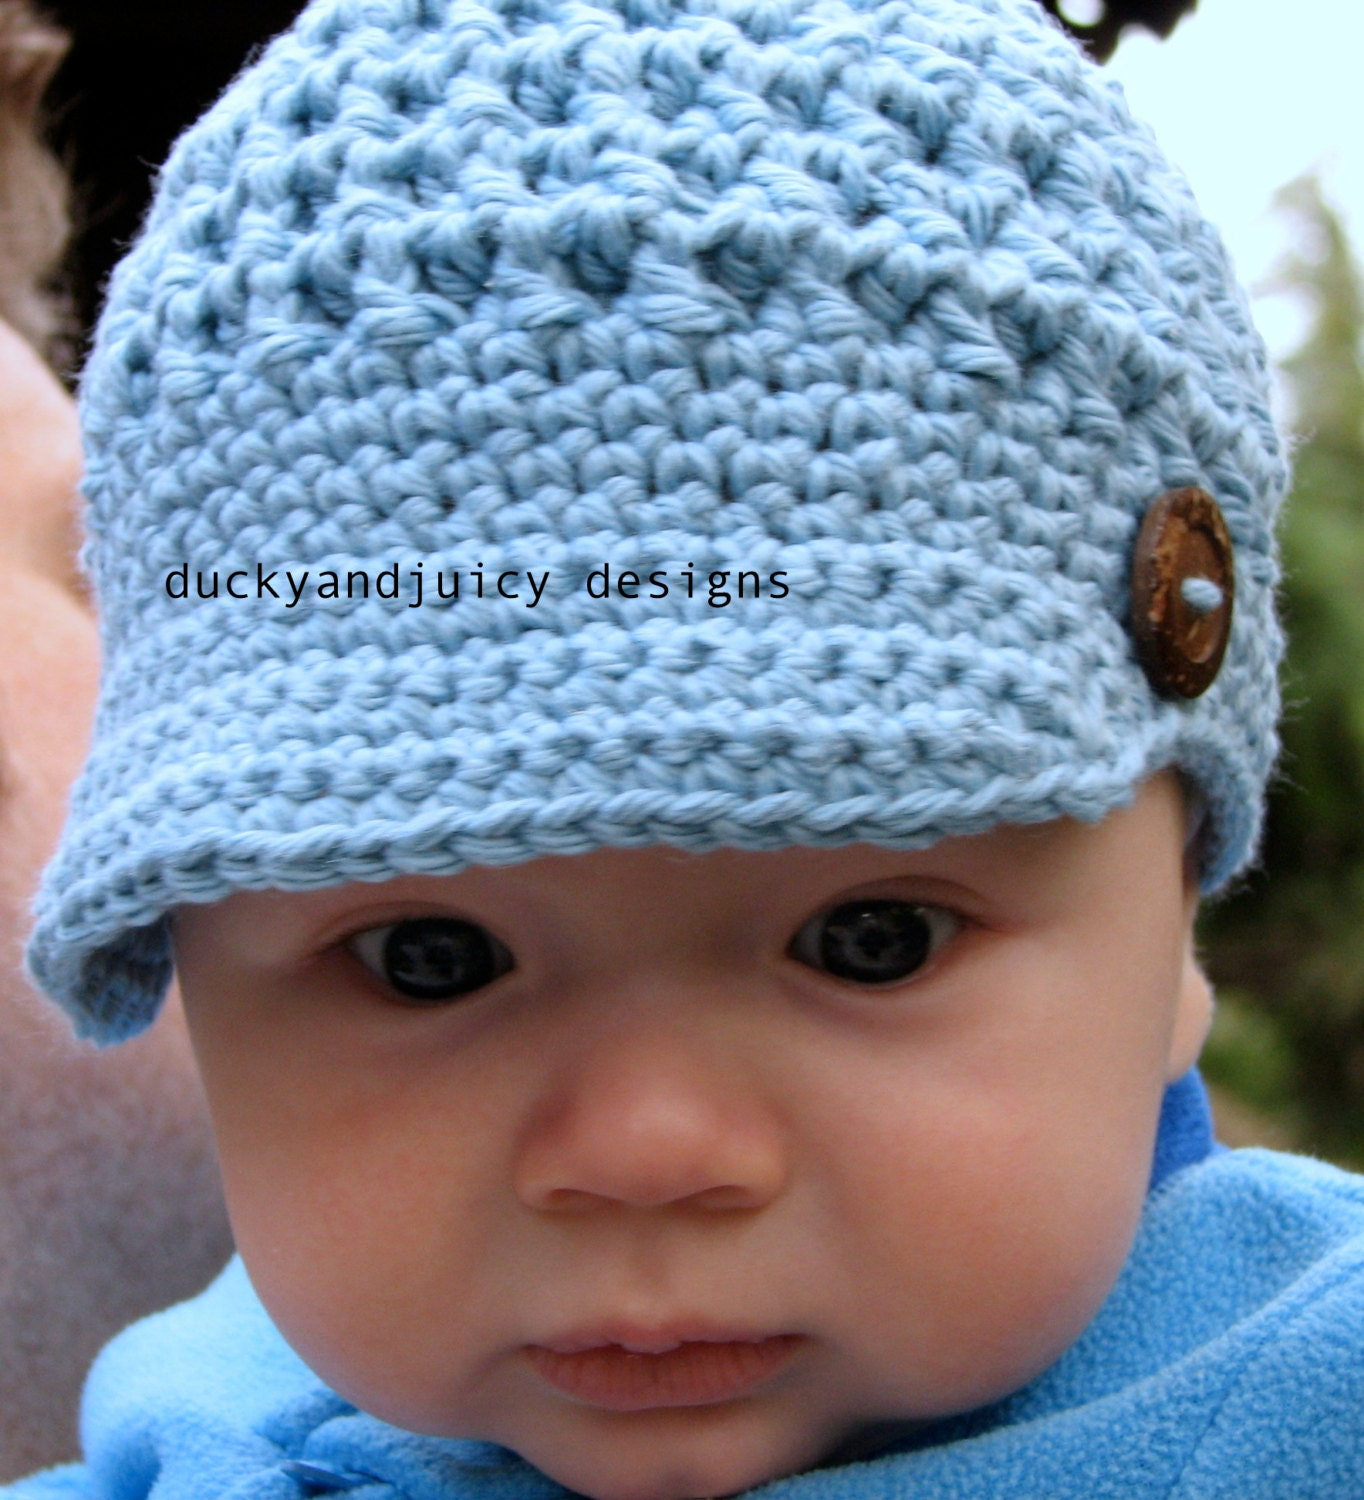 Crocheting Baby Hats : Baby Crochet Hat Baby Boy Hat Baby Girl Hat by ducklyandjuicy